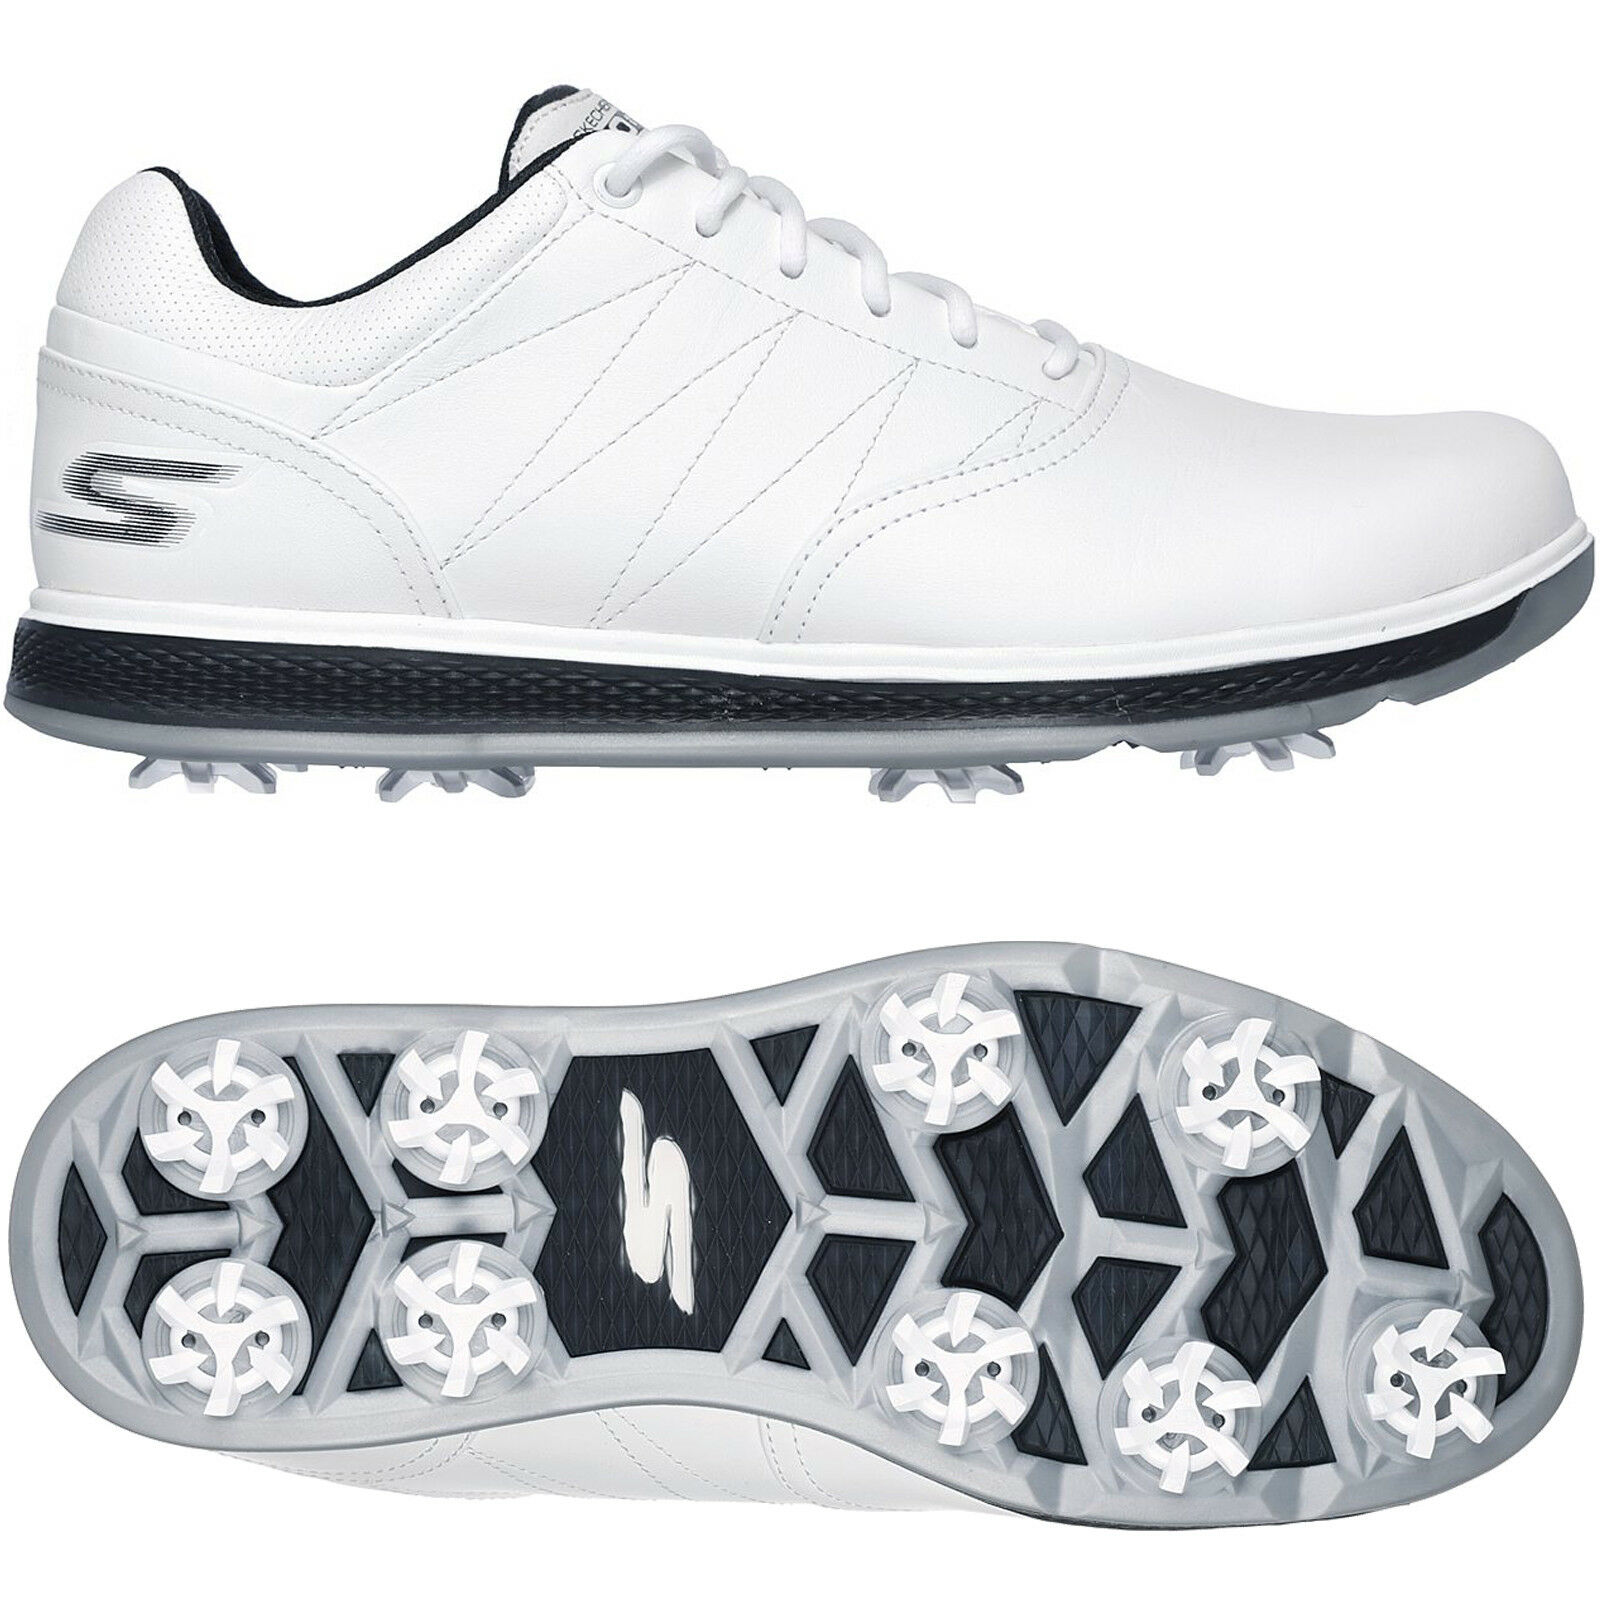 SKECHERS 2018 GO GOLF PRO V.3 WATERPROOF LEATHER MENS SPIKED GOLF SHOES